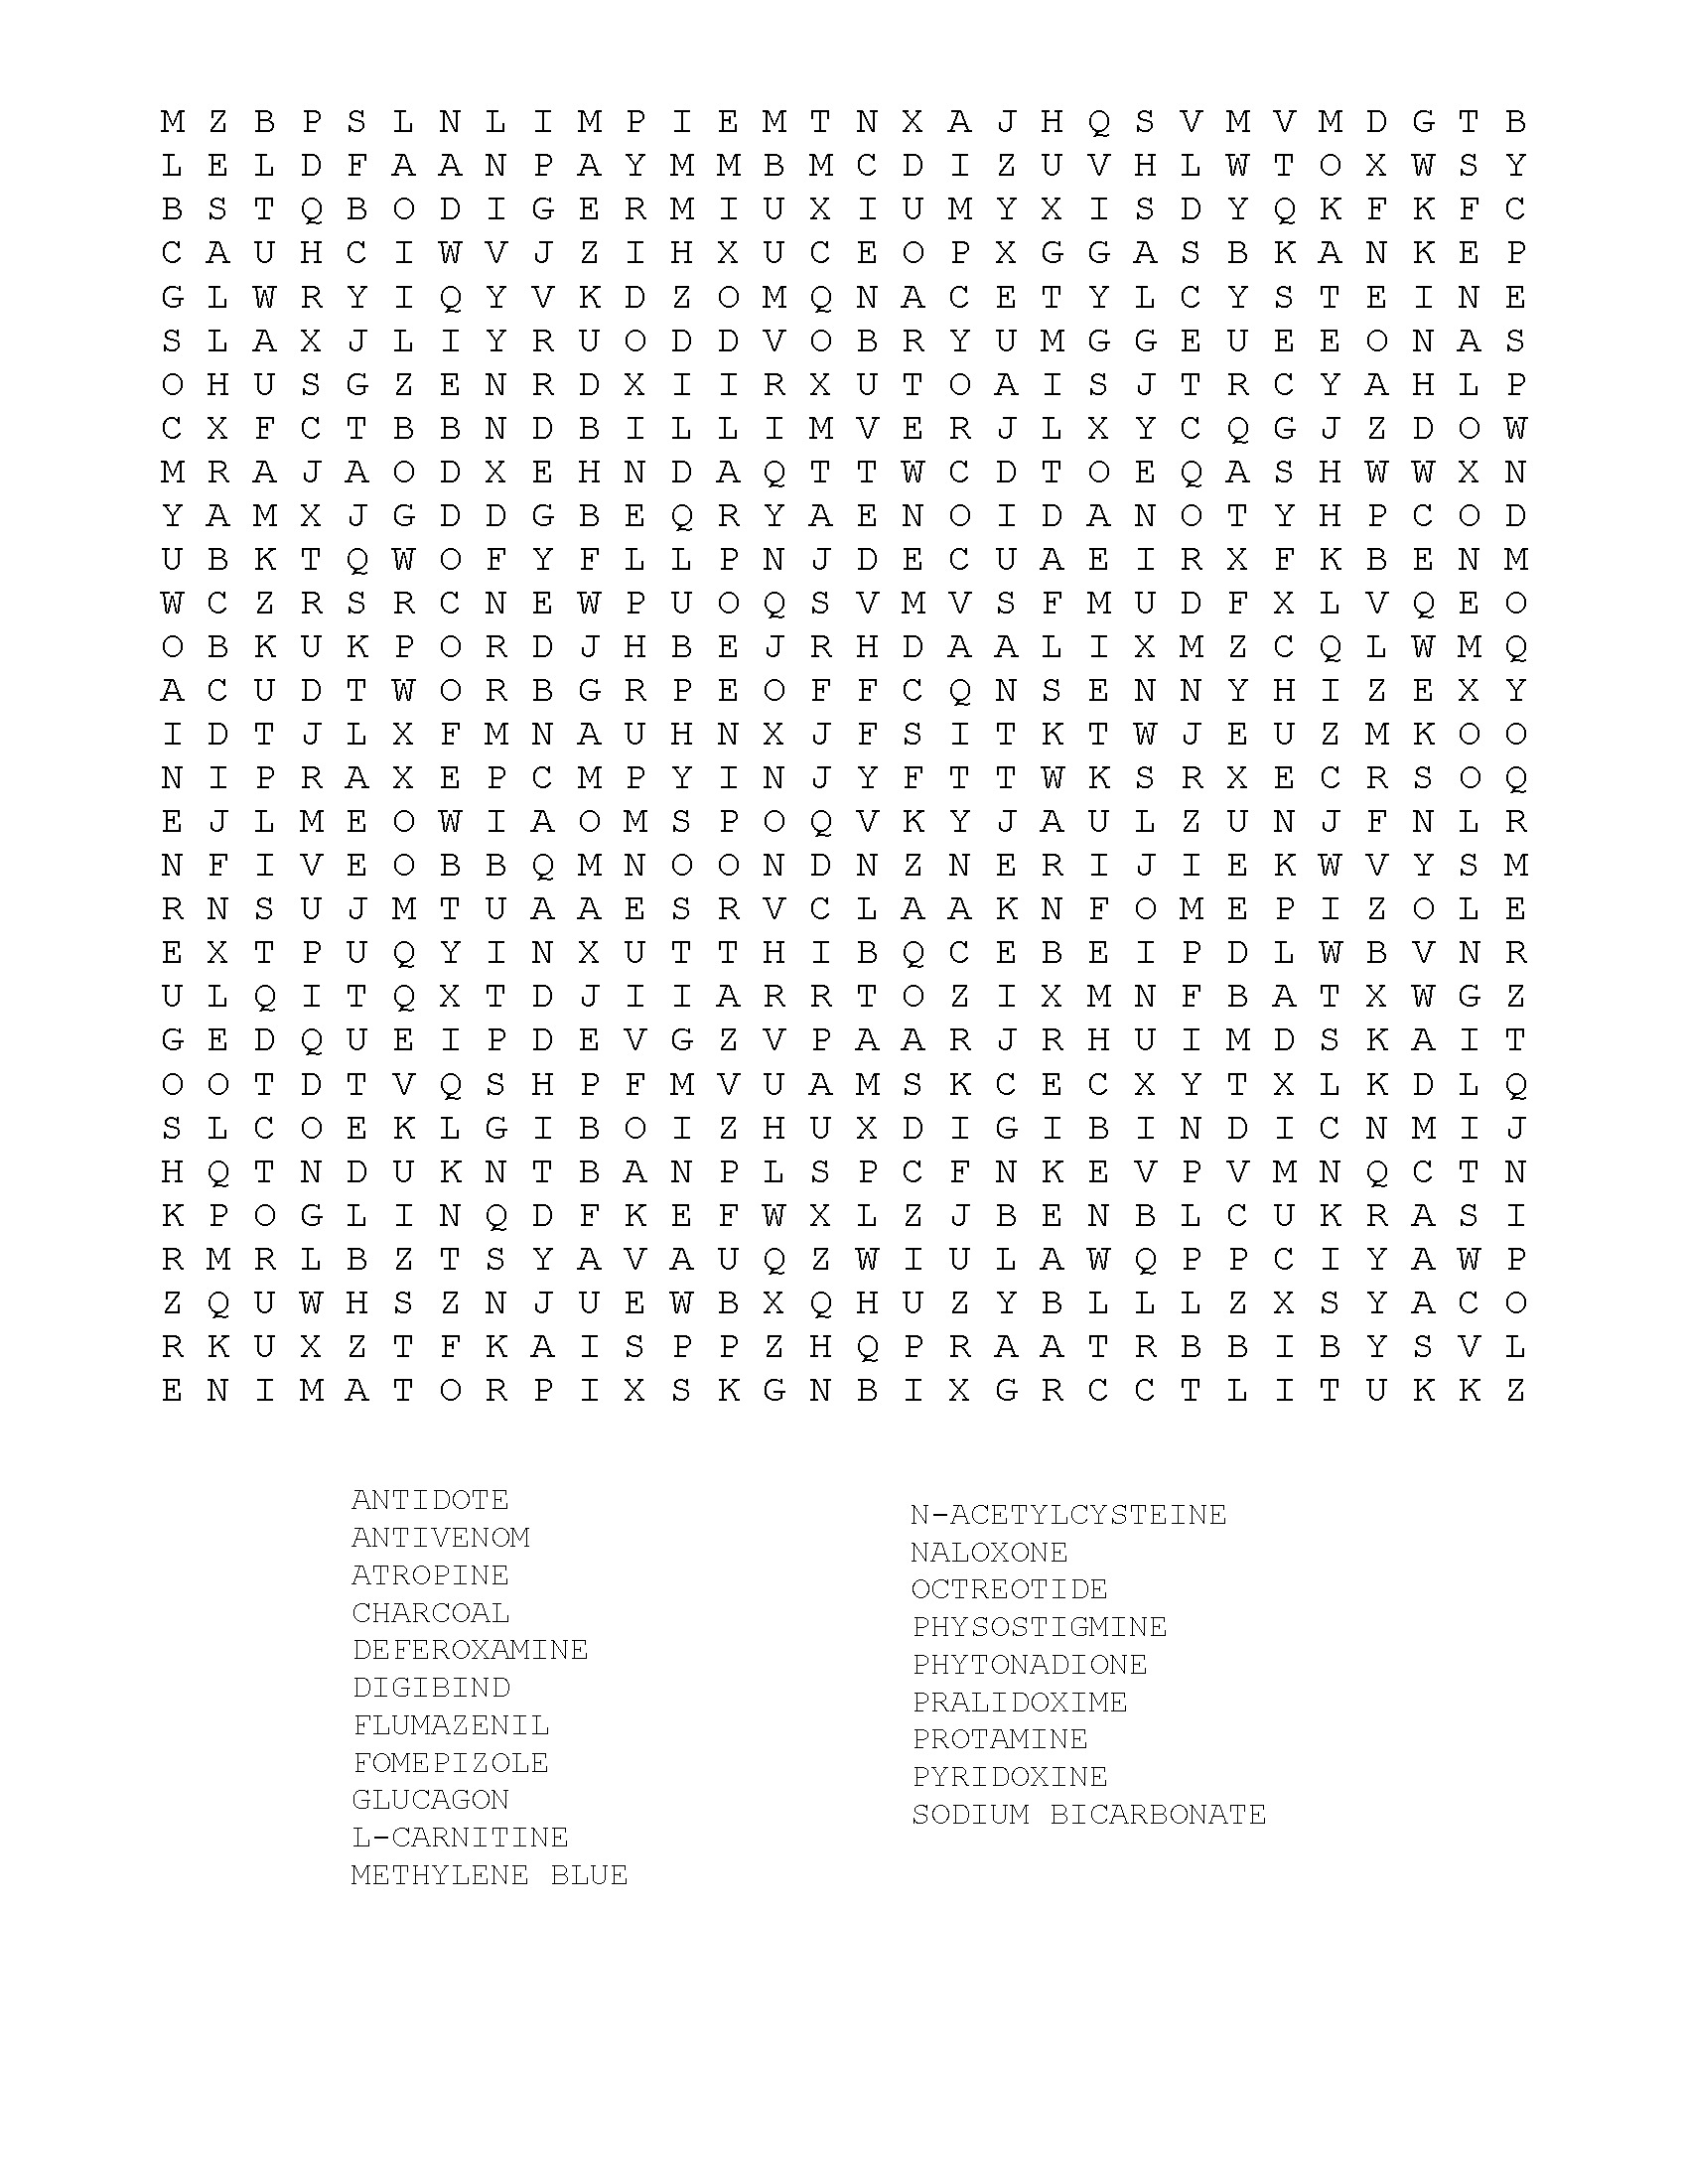 Antidote word search